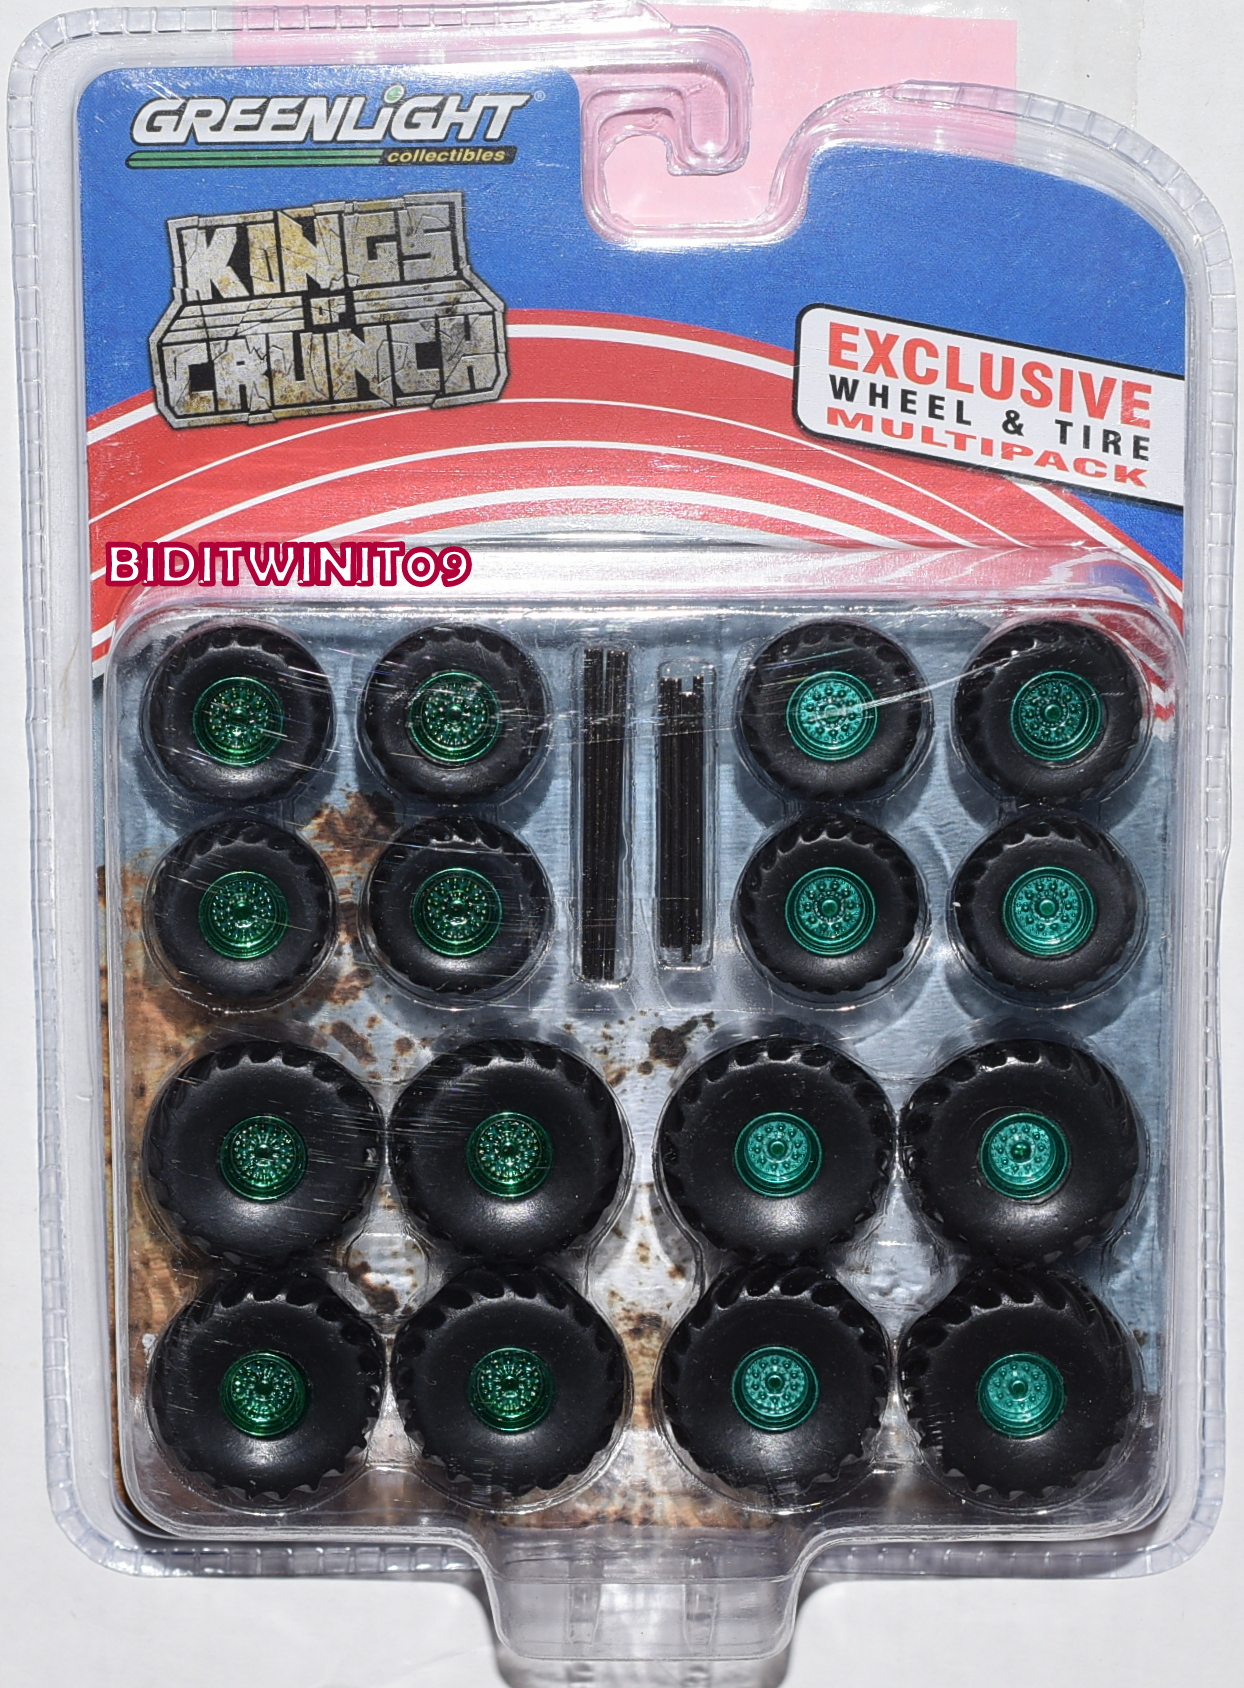 GREENLIGHT KINGS OF CRUNCH WHEEL & TIRE PACK - 16 WHEELS, 16 TIRES GREEN MACHINE